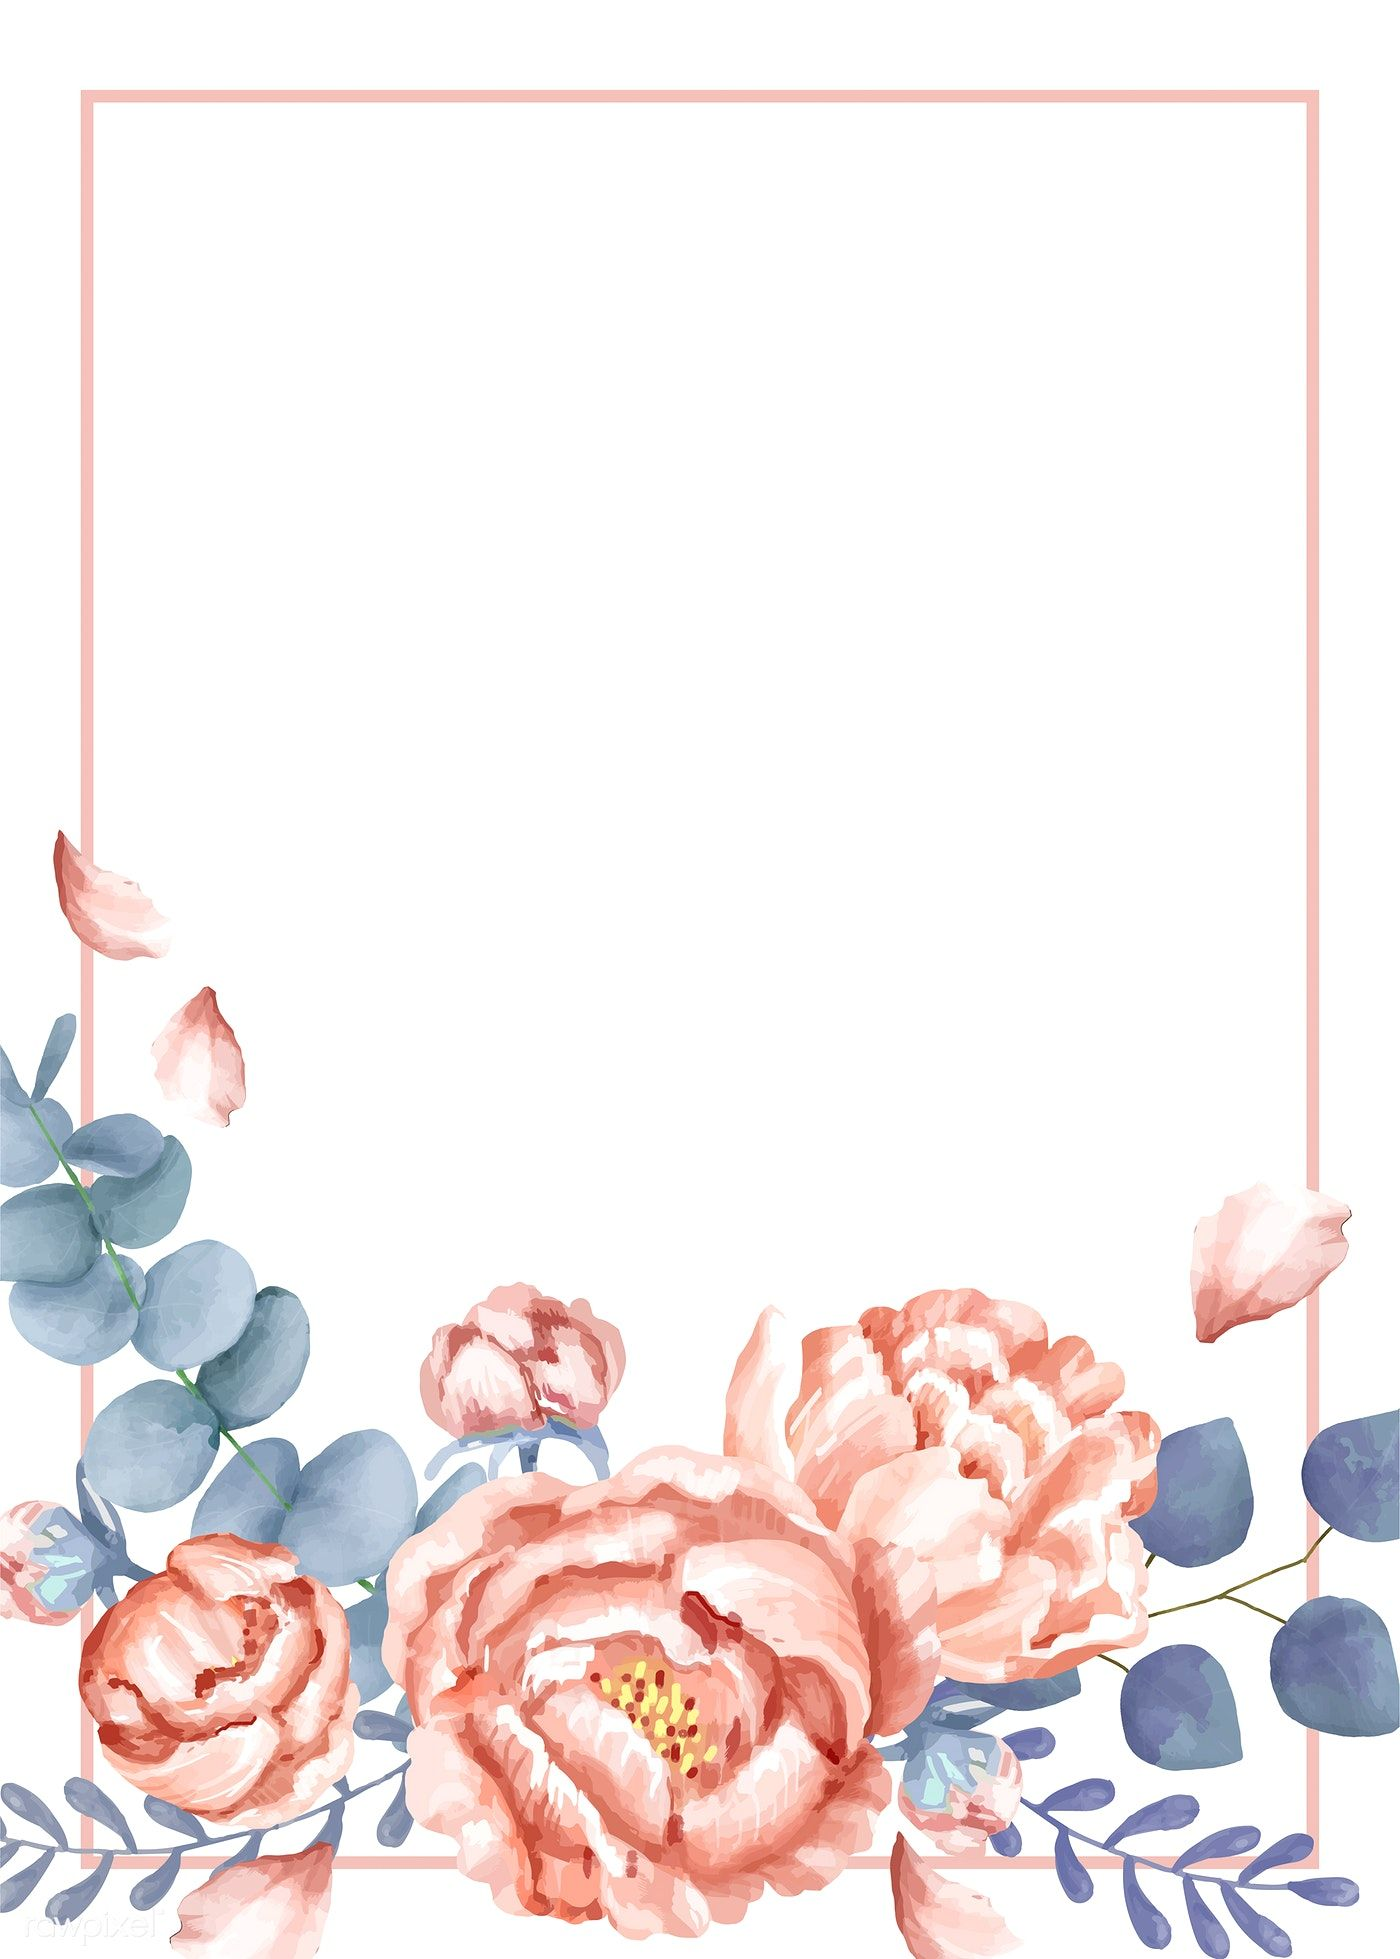 Download premium vector of Invitation card with a floral theme 1400x1959